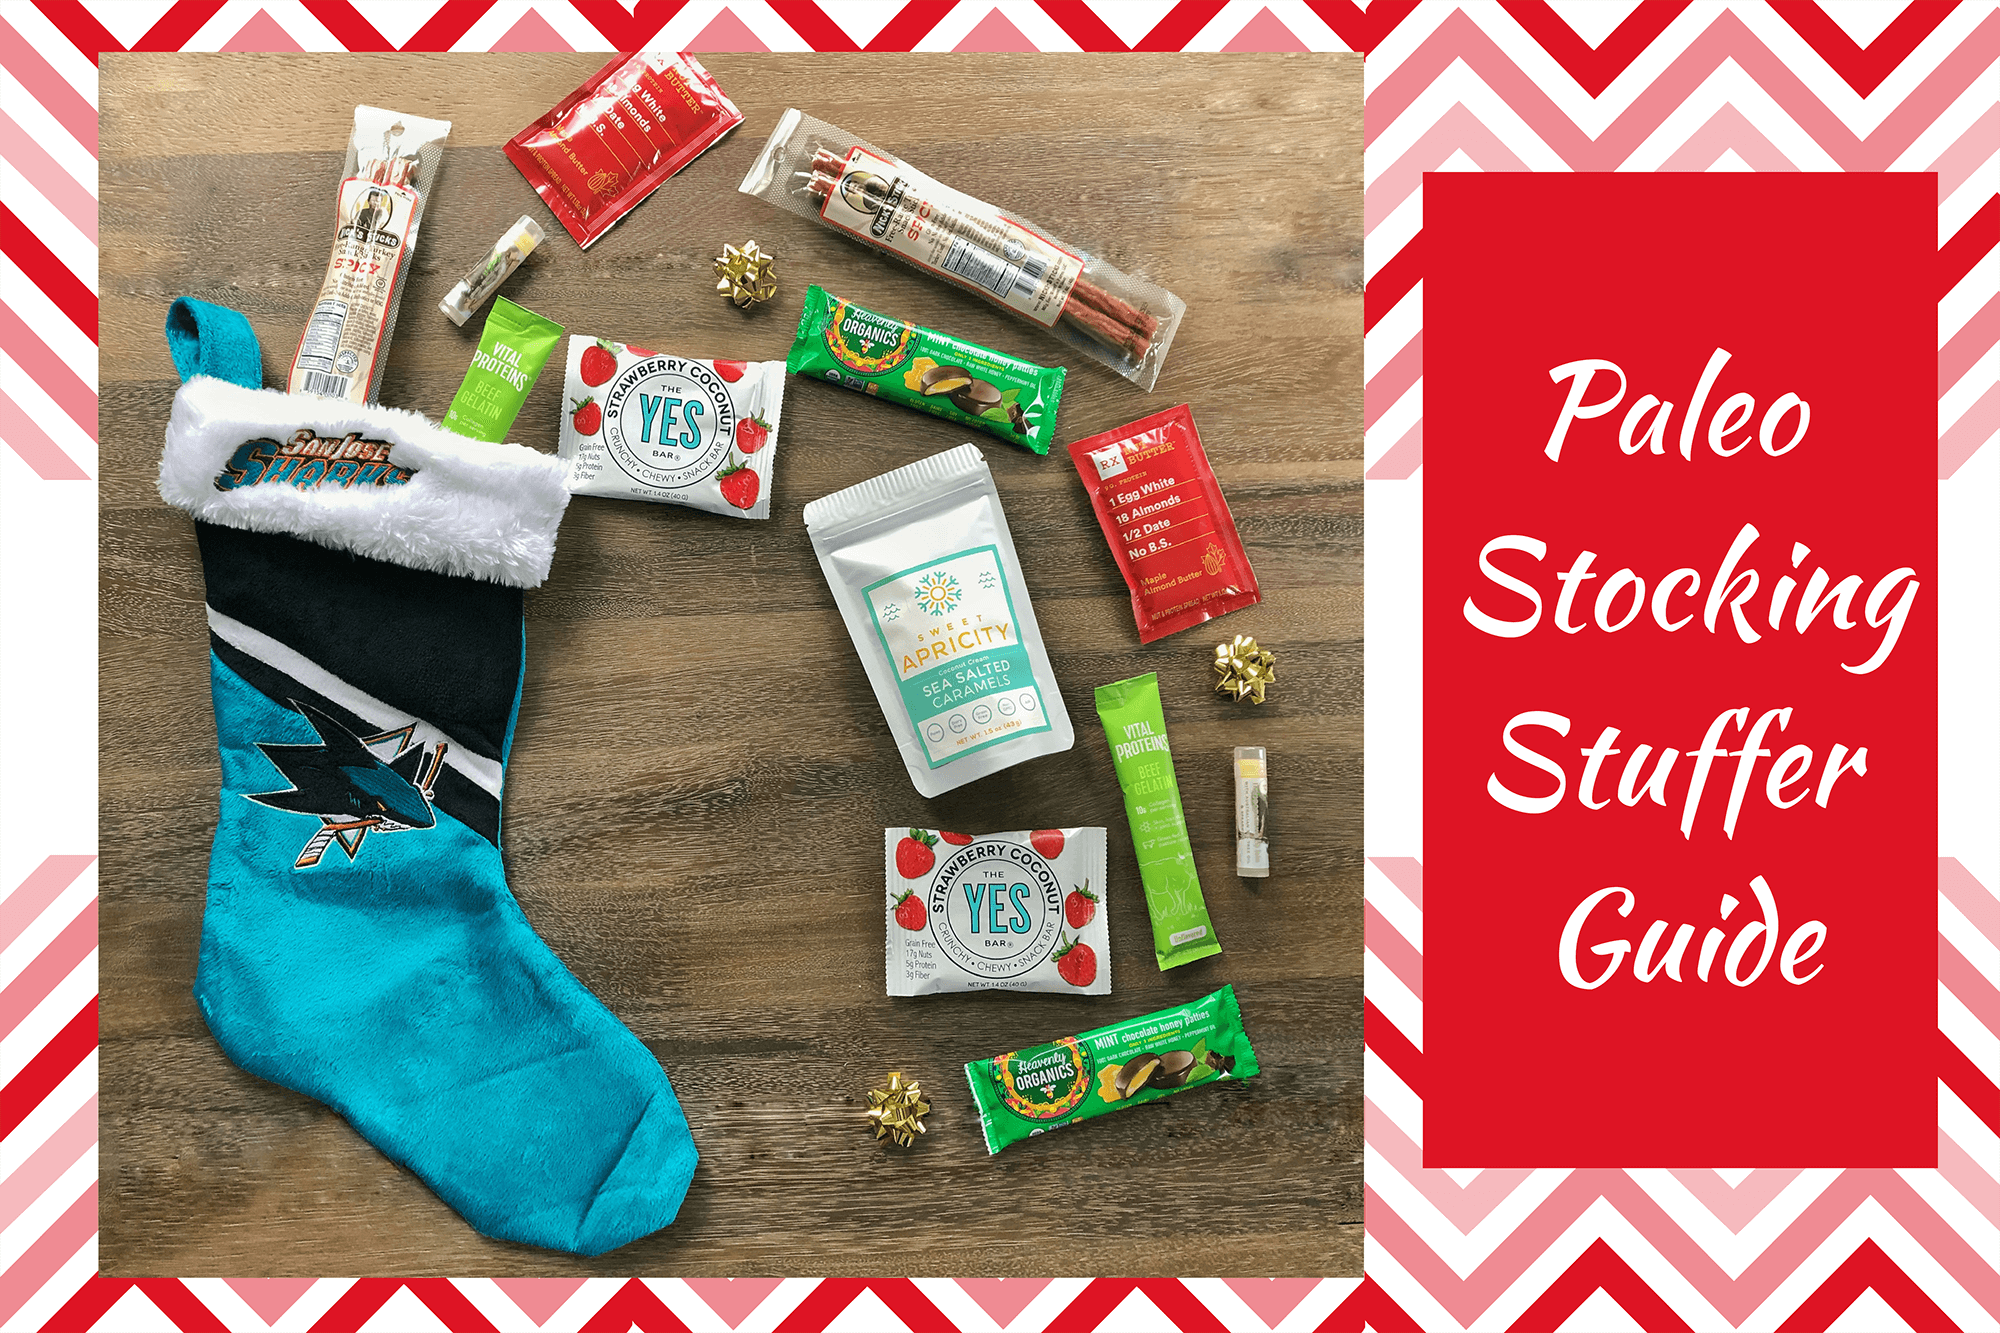 Paleo Stocking Stuffer Guide